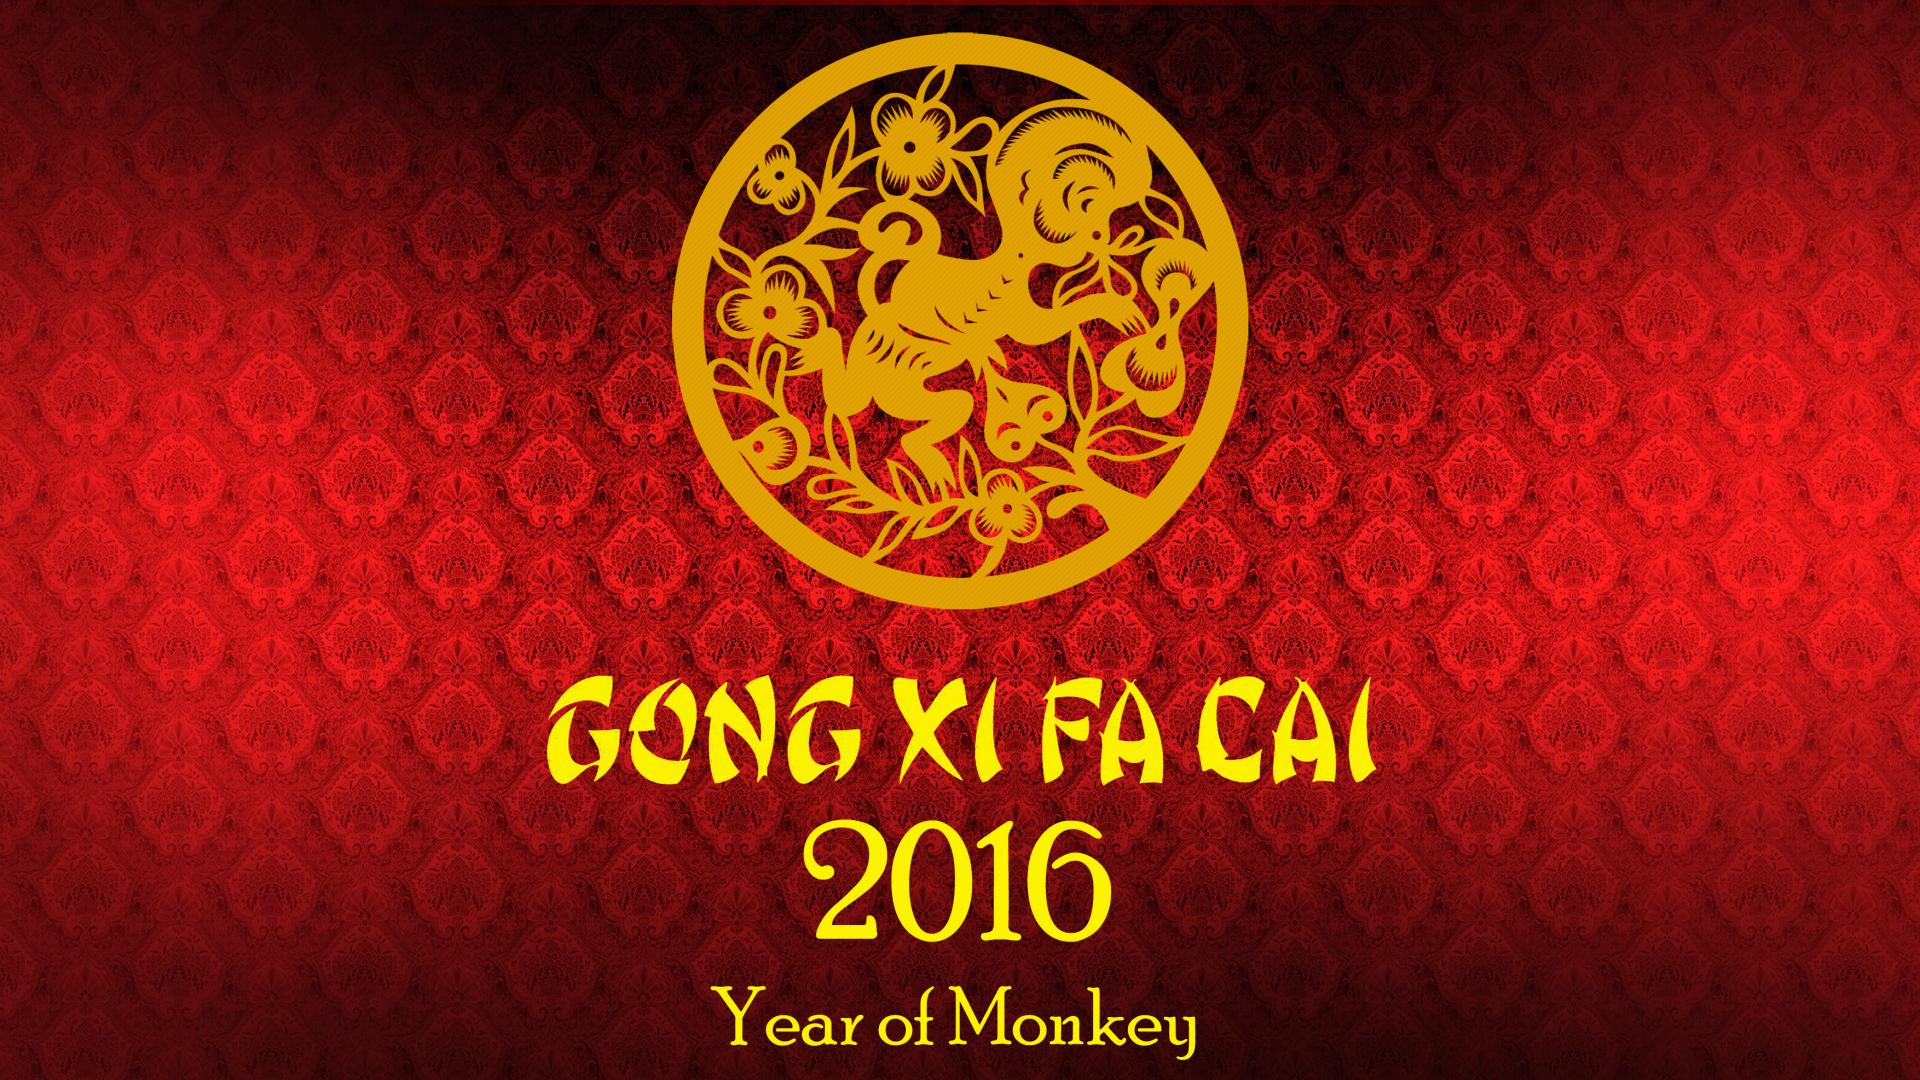 chinese new year 2016 hd wallpaper - 2016 Chinese New Year